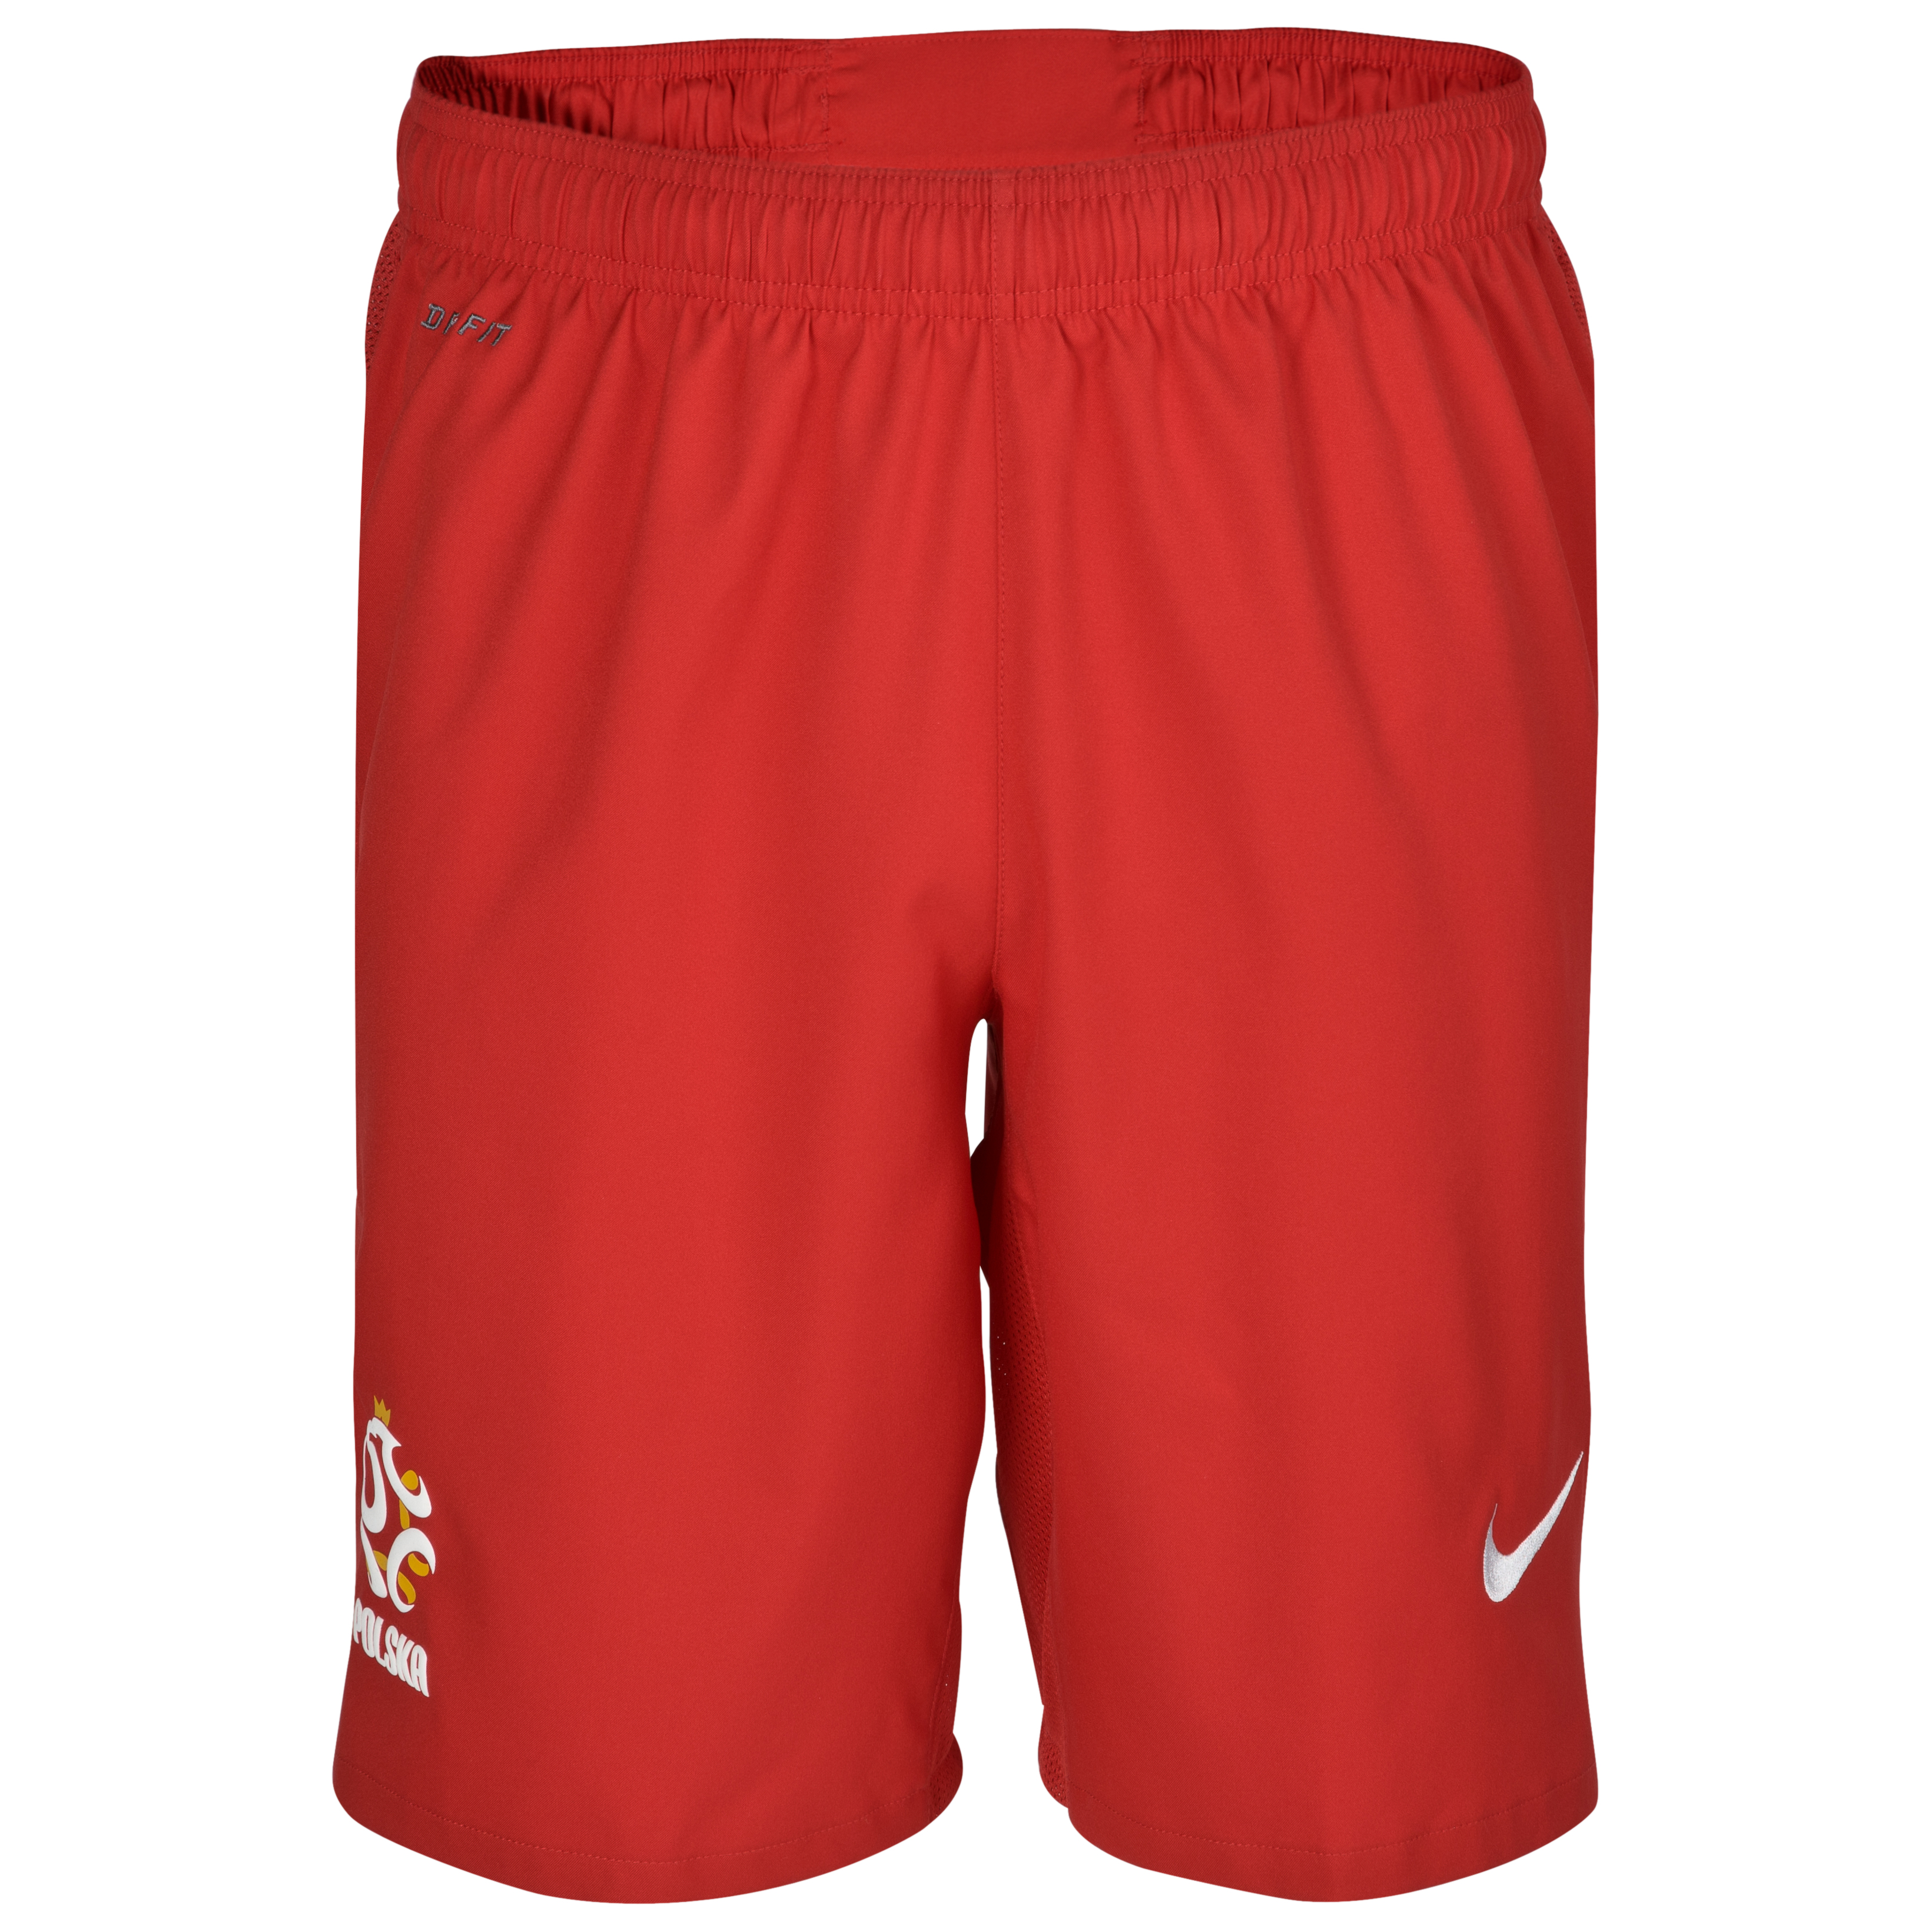 Poland Home/Away Shorts 2012/13 - Kids